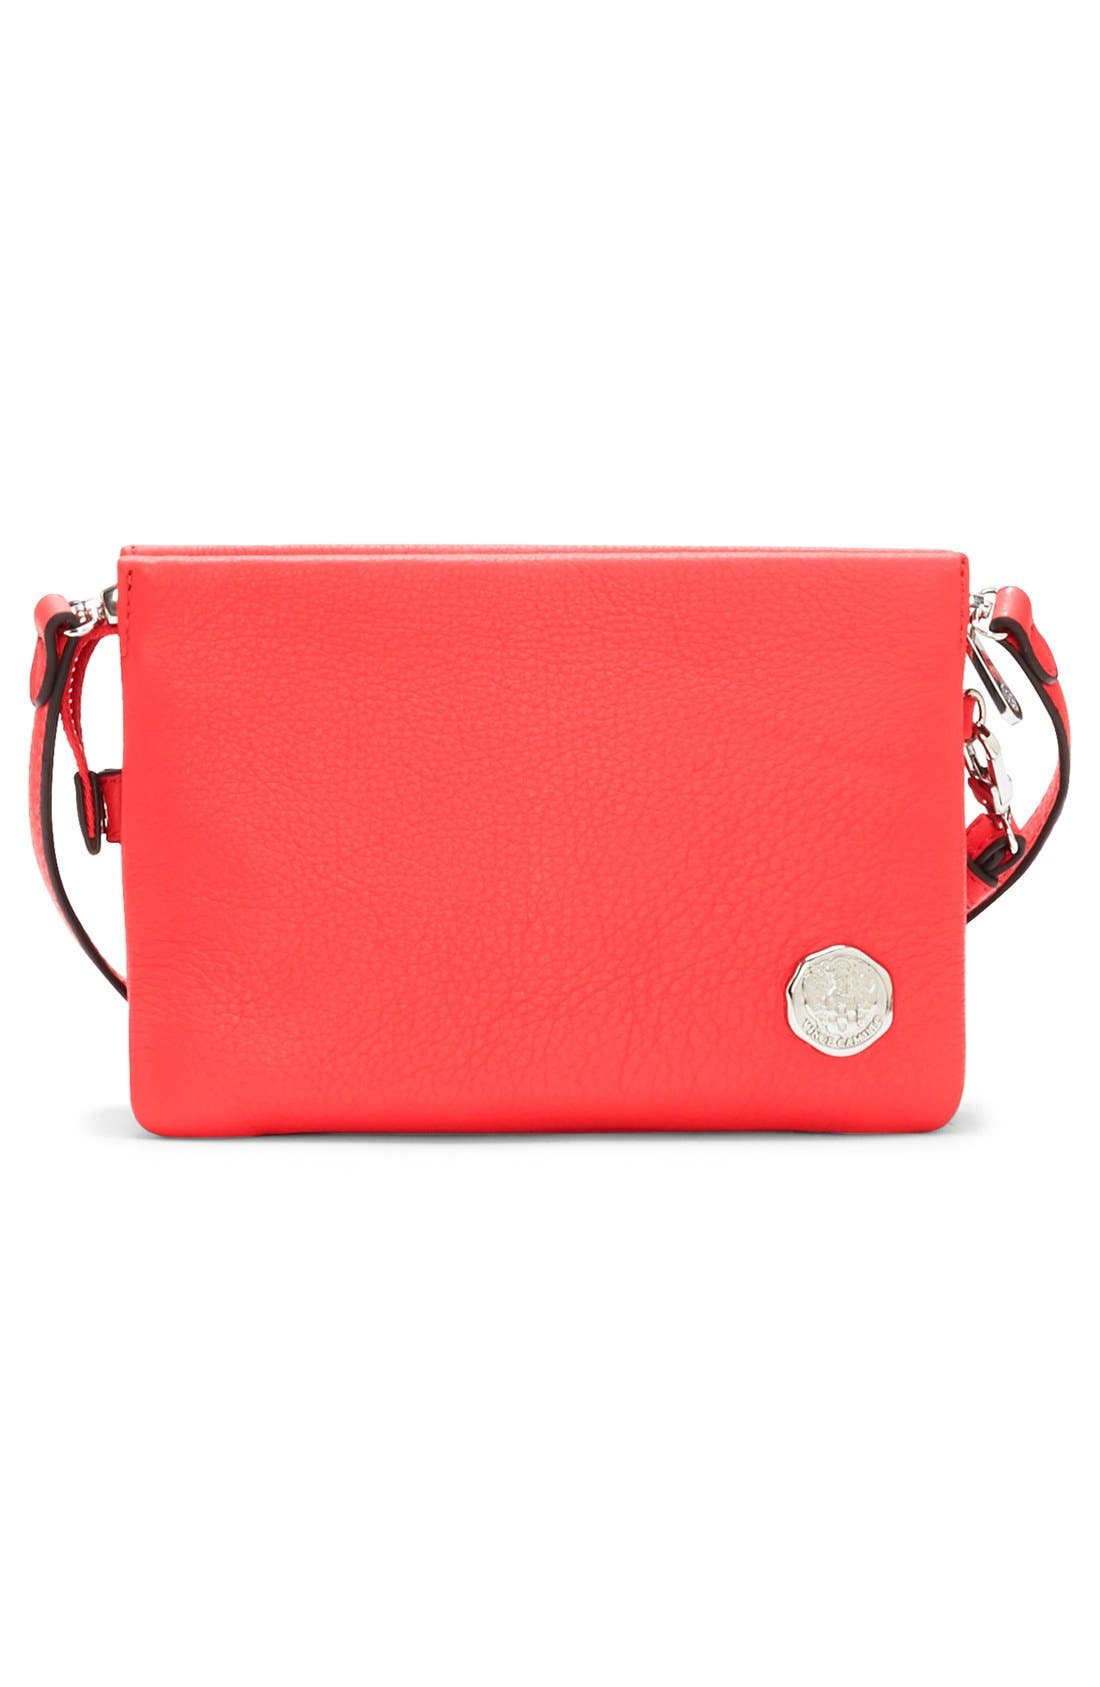 'Cami' Leather Crossbody Bag,                             Alternate thumbnail 58, color,